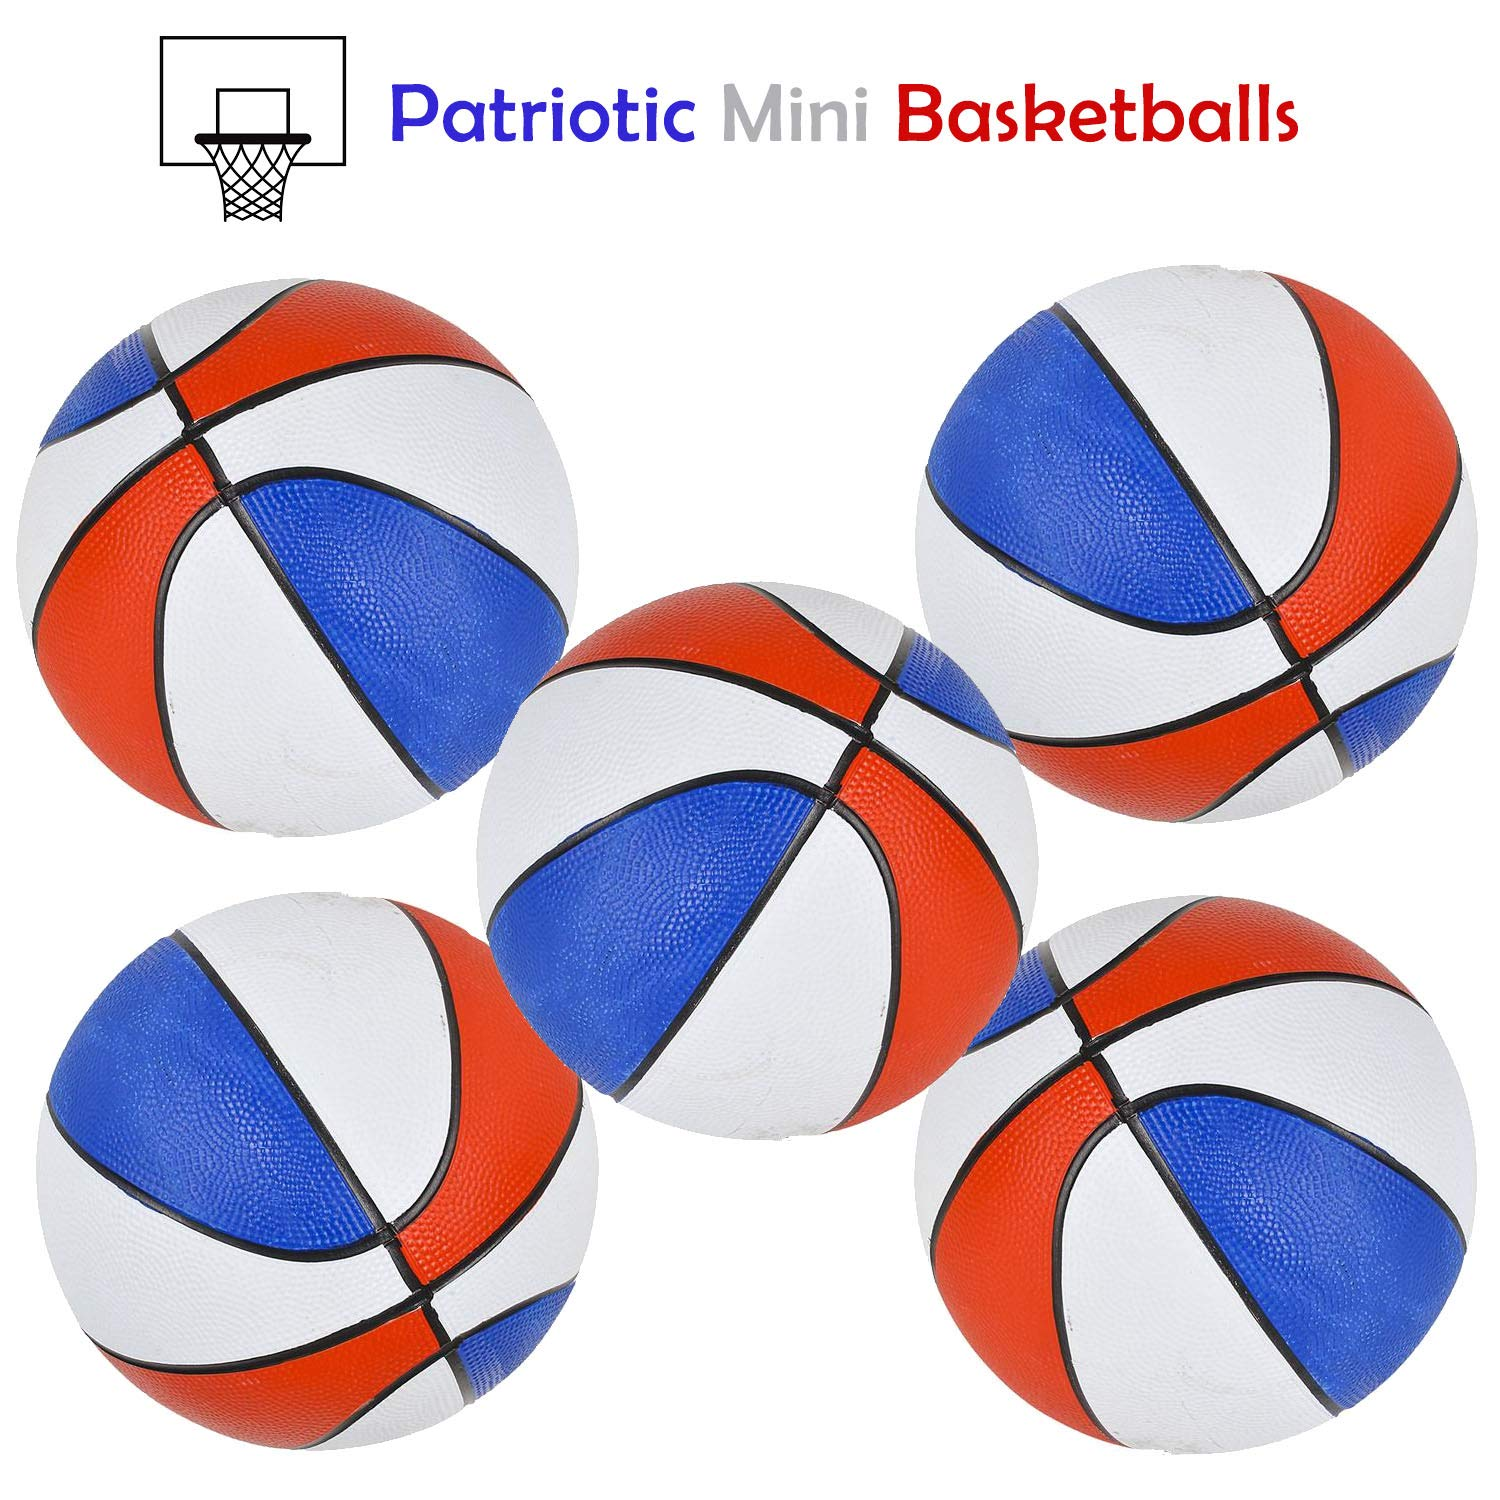 Bottles N Bags Mini Basketballs | Patriotic Red, White & Blue | 7'' Mini Basketball for Indoor and Outdoor Fun Shooting Hoops ● Awesome Game Prizes ● Made of Durable Rubber (10 Pack) by Bottles N Bags